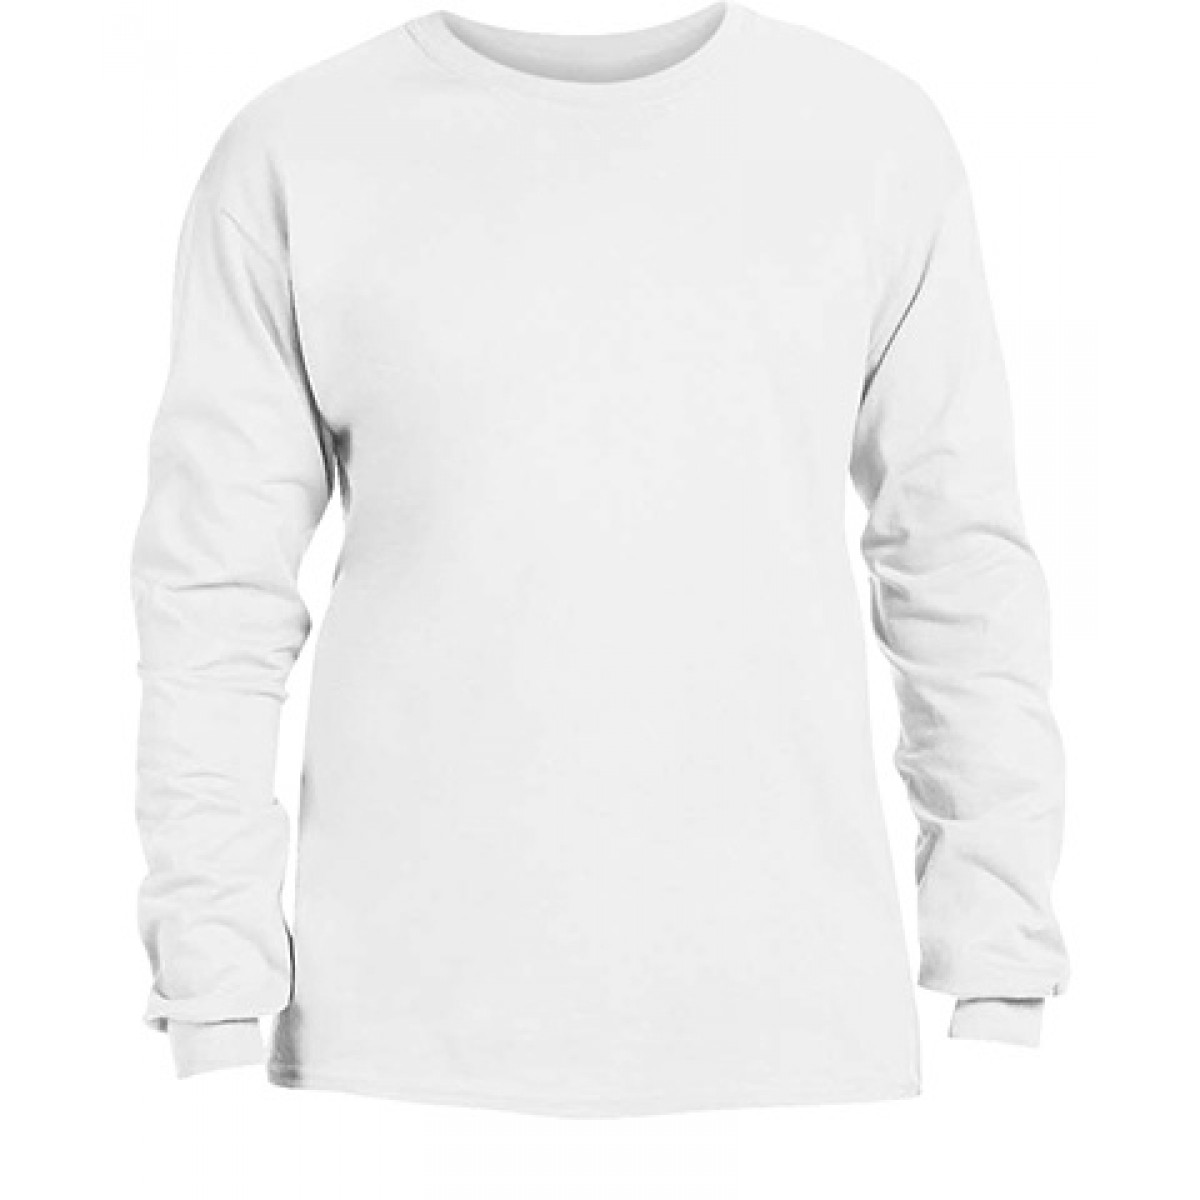 Adidas Long Sleeve T-shirt With Adidas logo-White-XS